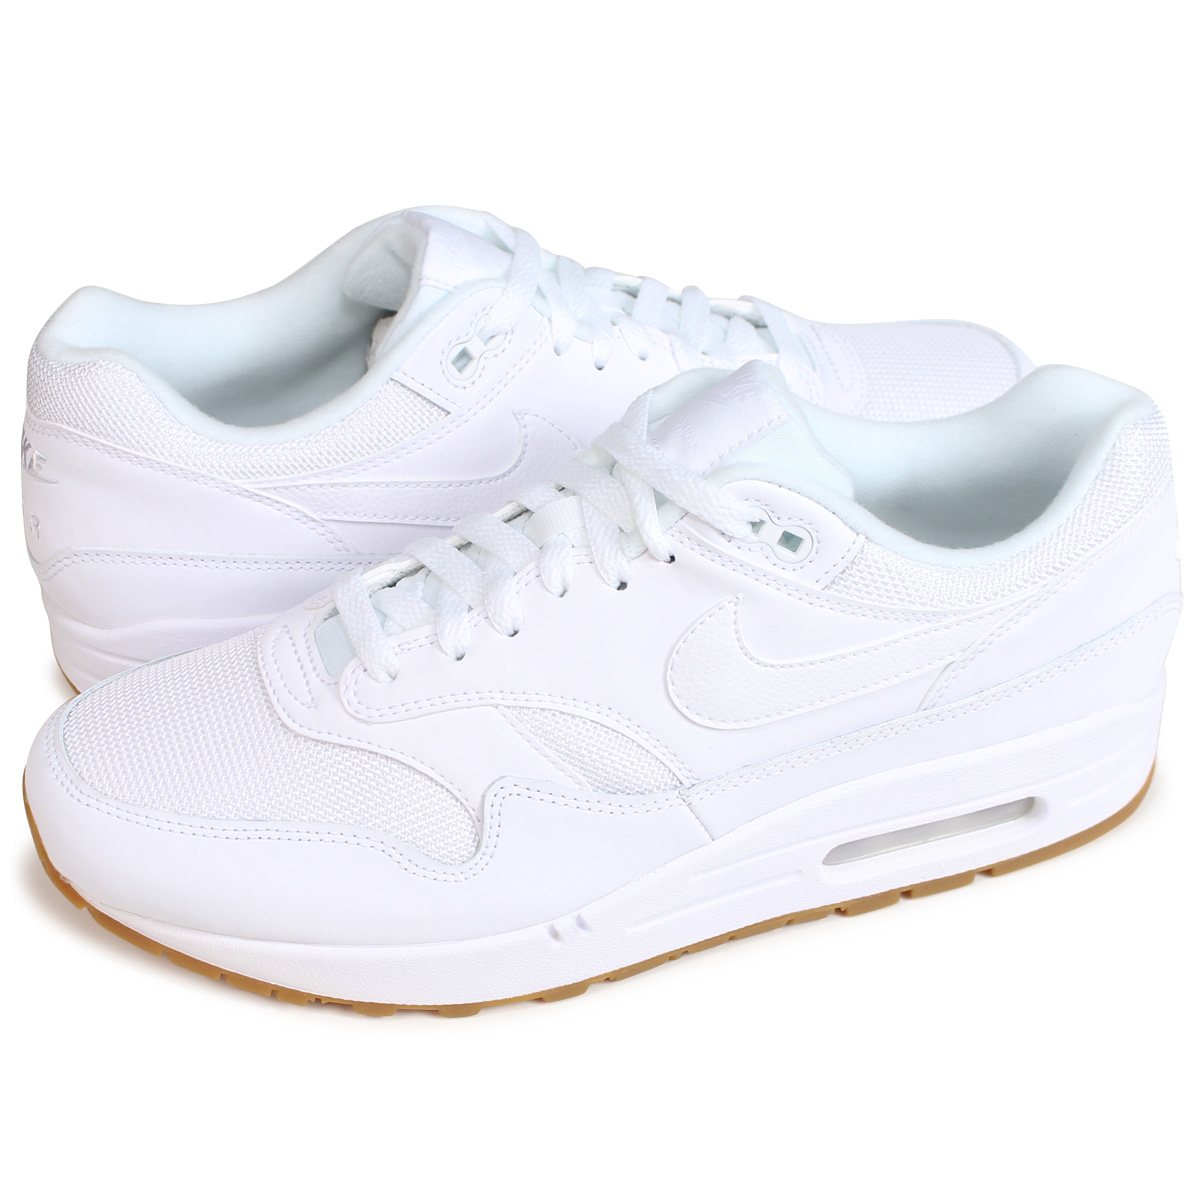 NIKE AIR MAX 1 Kie Ney AMAX 1 sneakers men AH8145-109 white  load planned  Shinnyu load in reservation product 7 24 containing  07eb3f0941